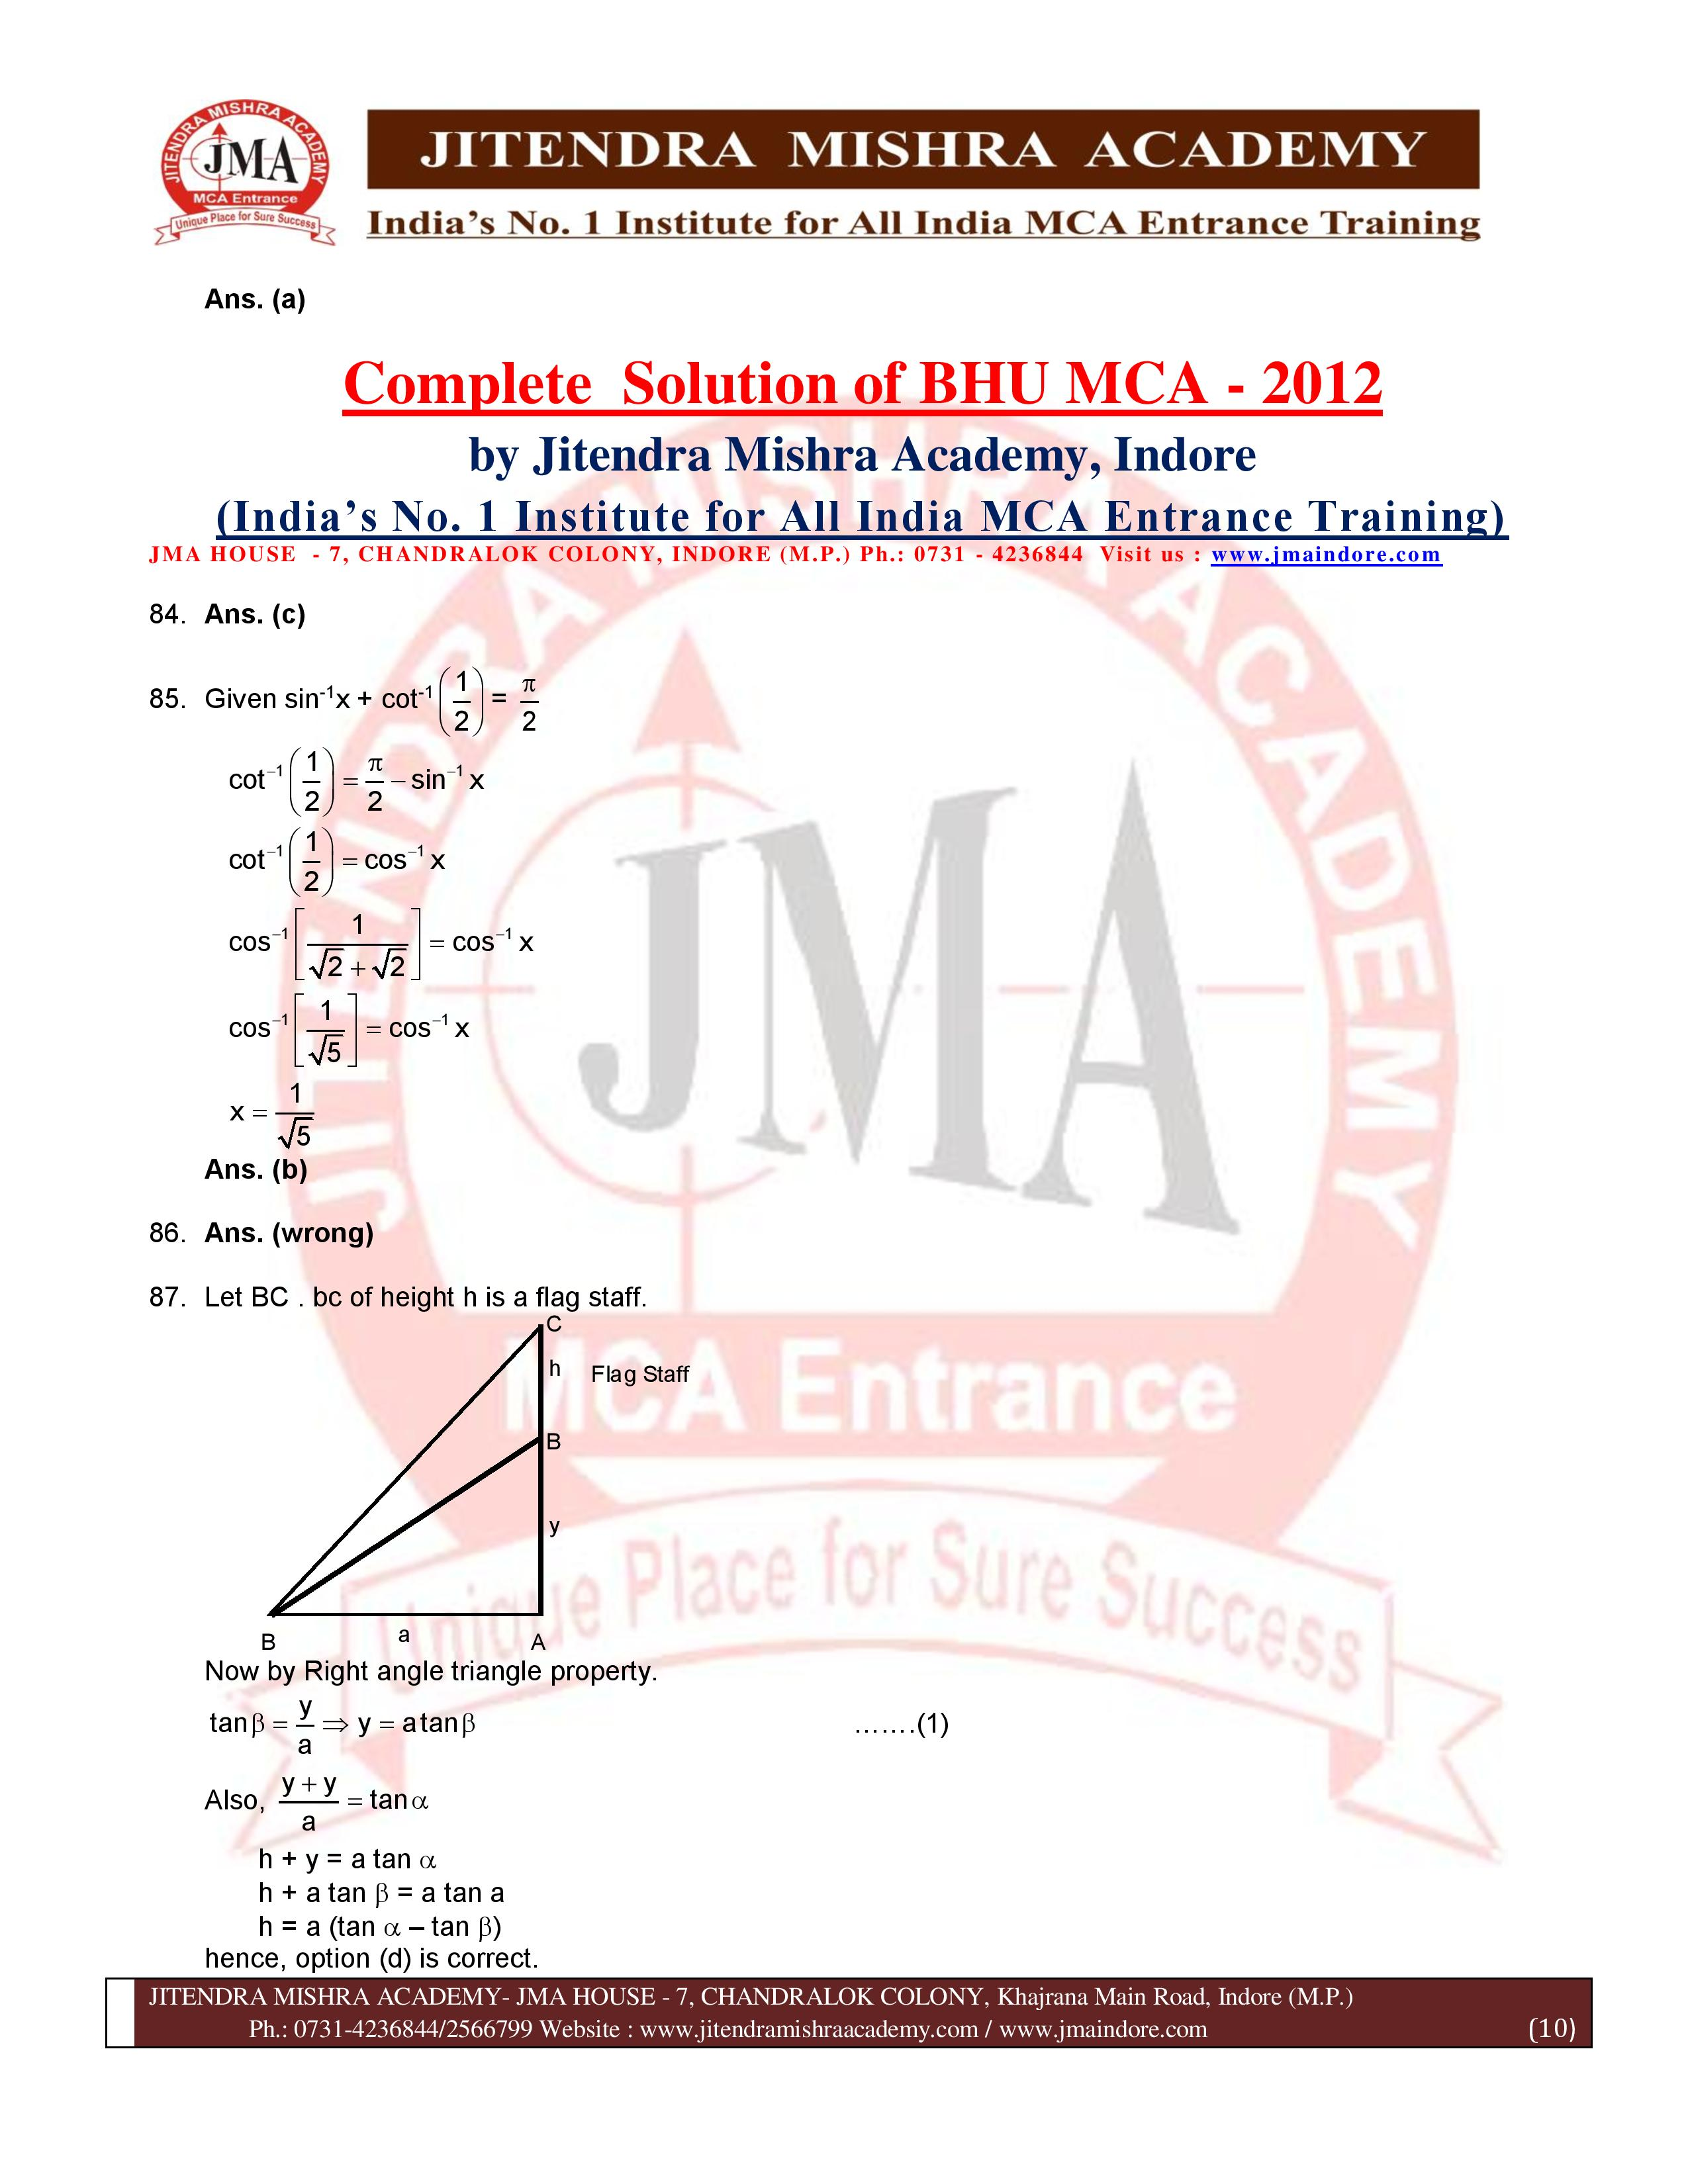 BHU 2012 SOLUTION (SET - 2) (07.07.16)-page-010